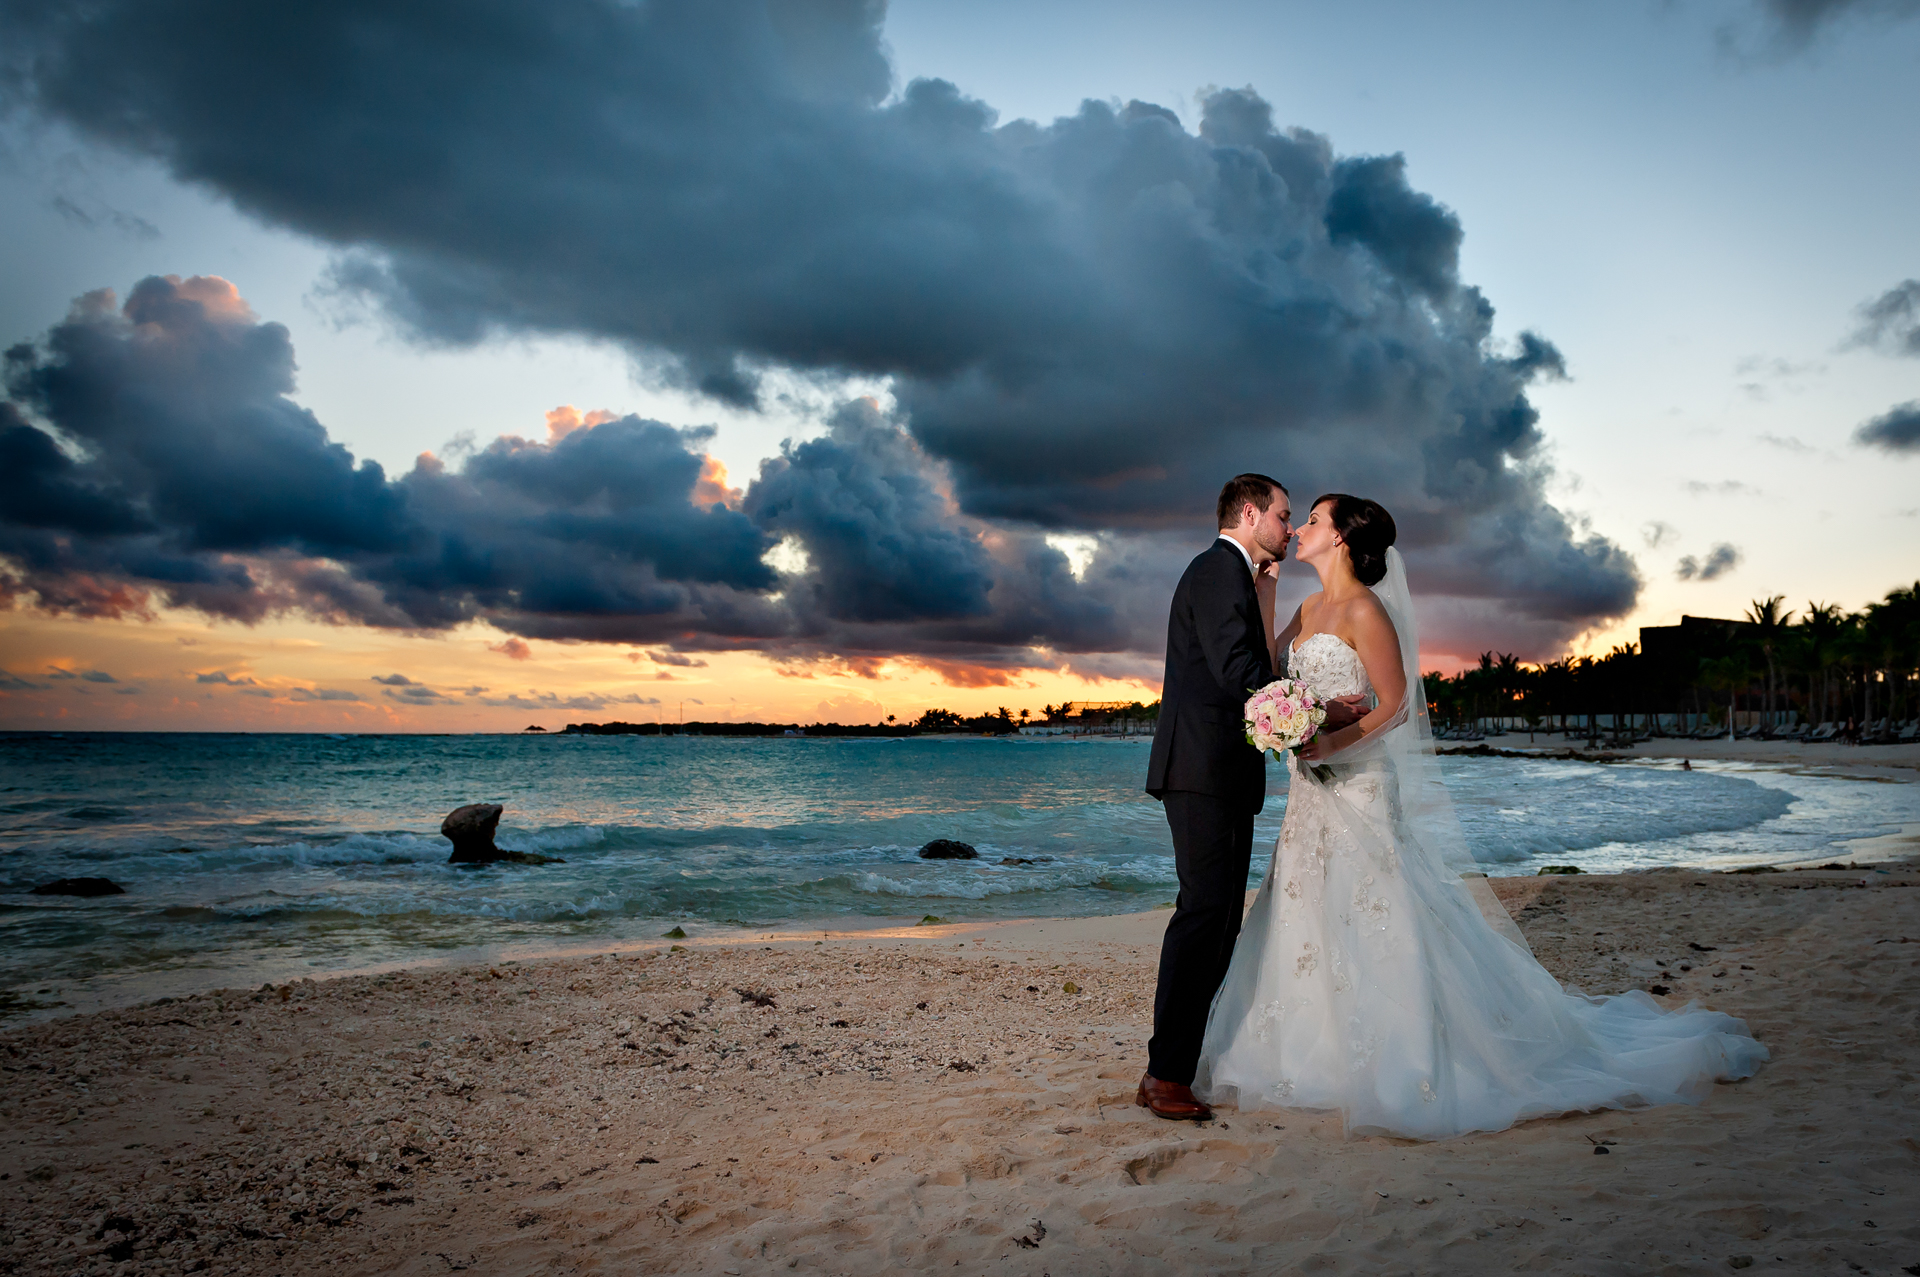 Andrea & Michel's Whirlwind Wedding at Barceló Maya Palace Deluxe